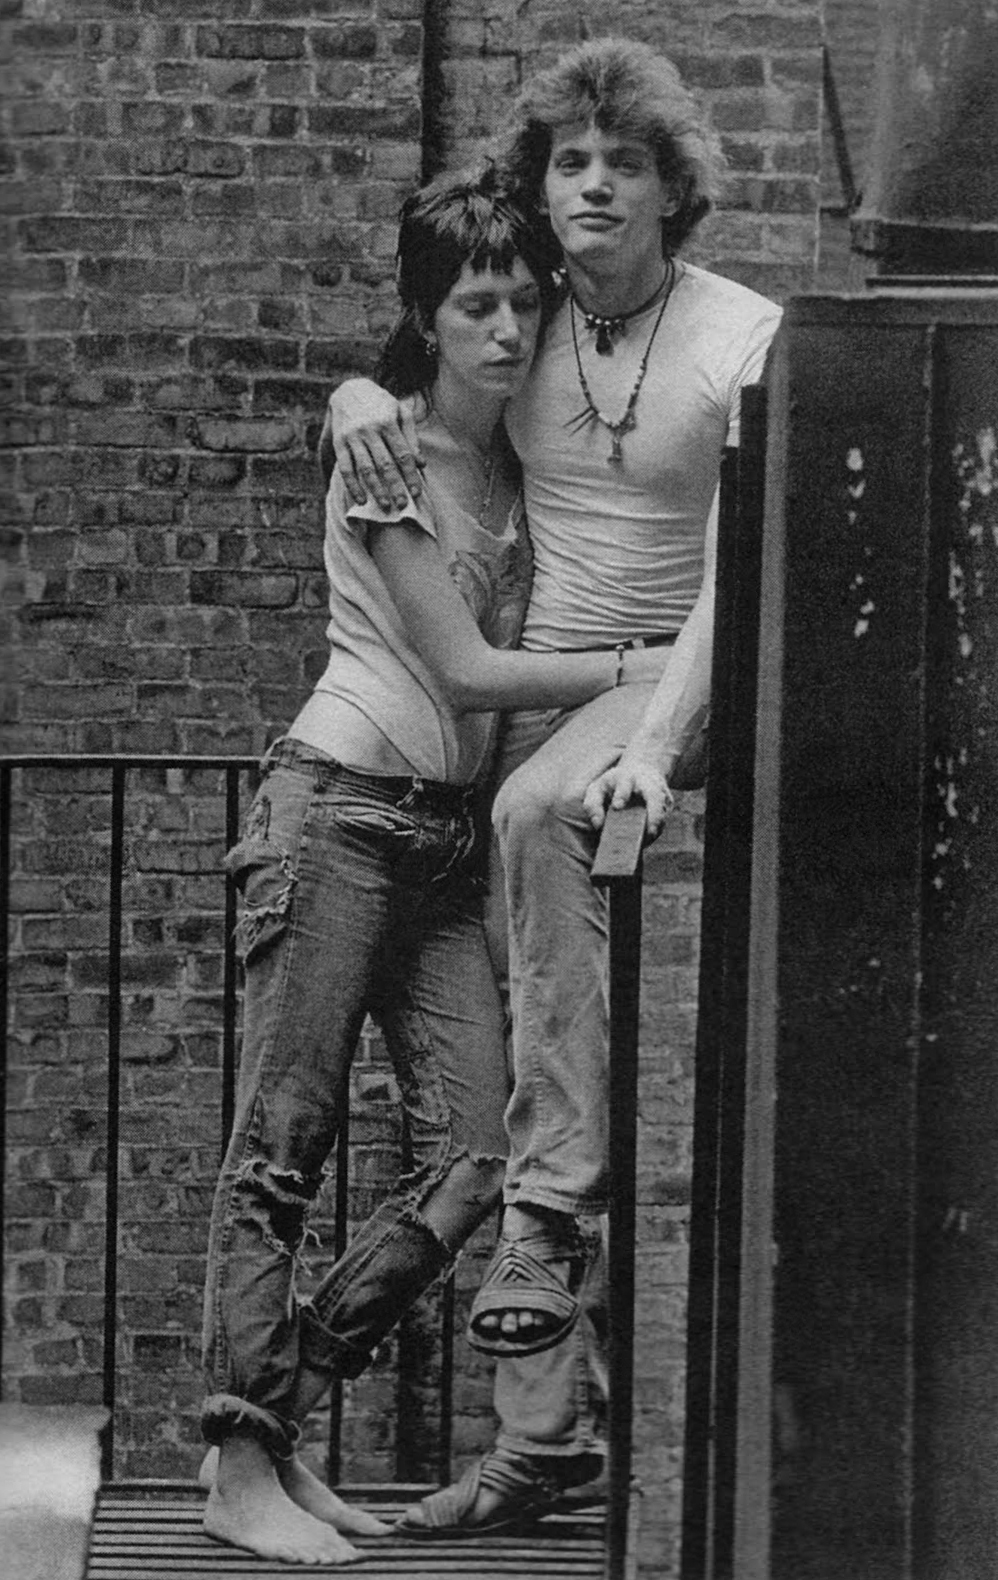 Robert_Mapplethorpe-Patti_Smith-02.jpg